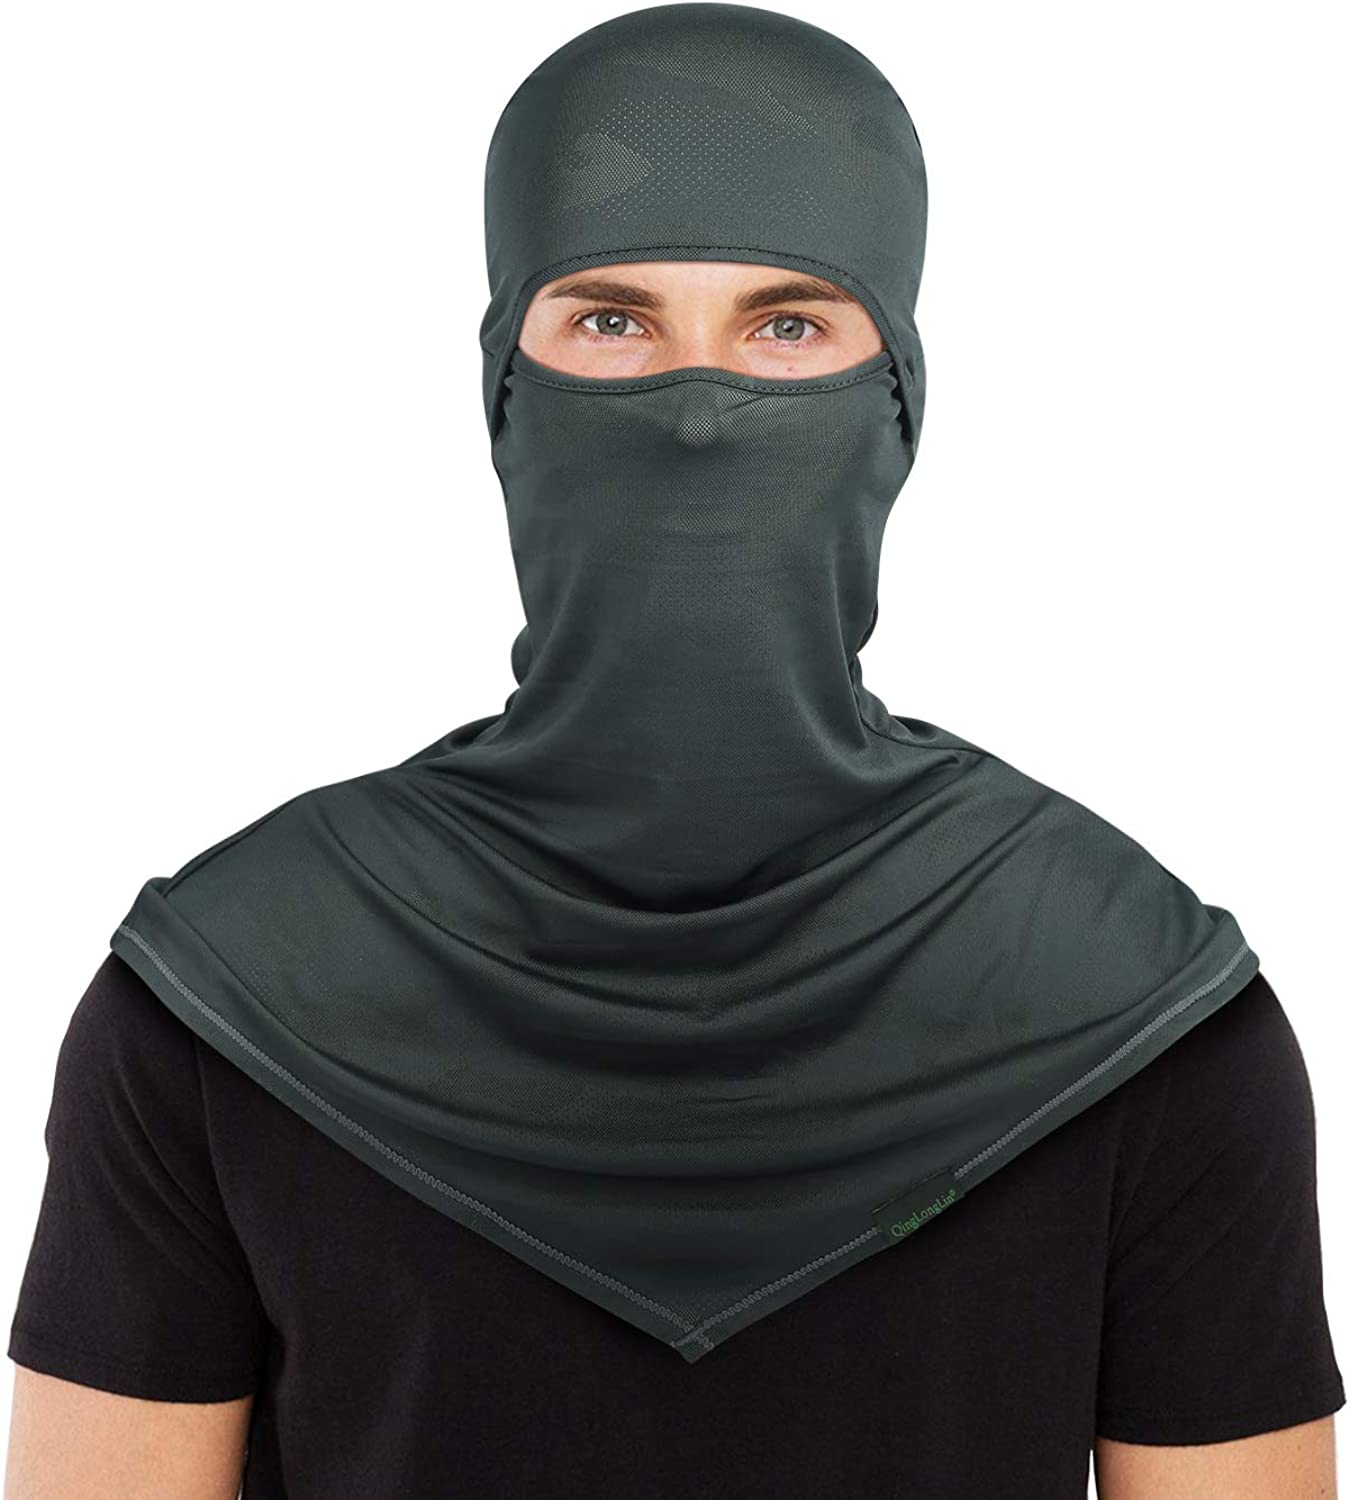 Summer Balaclava -Sun Protection Face National Fees free!! uniform free shipping Mask Quick Breathable Dry